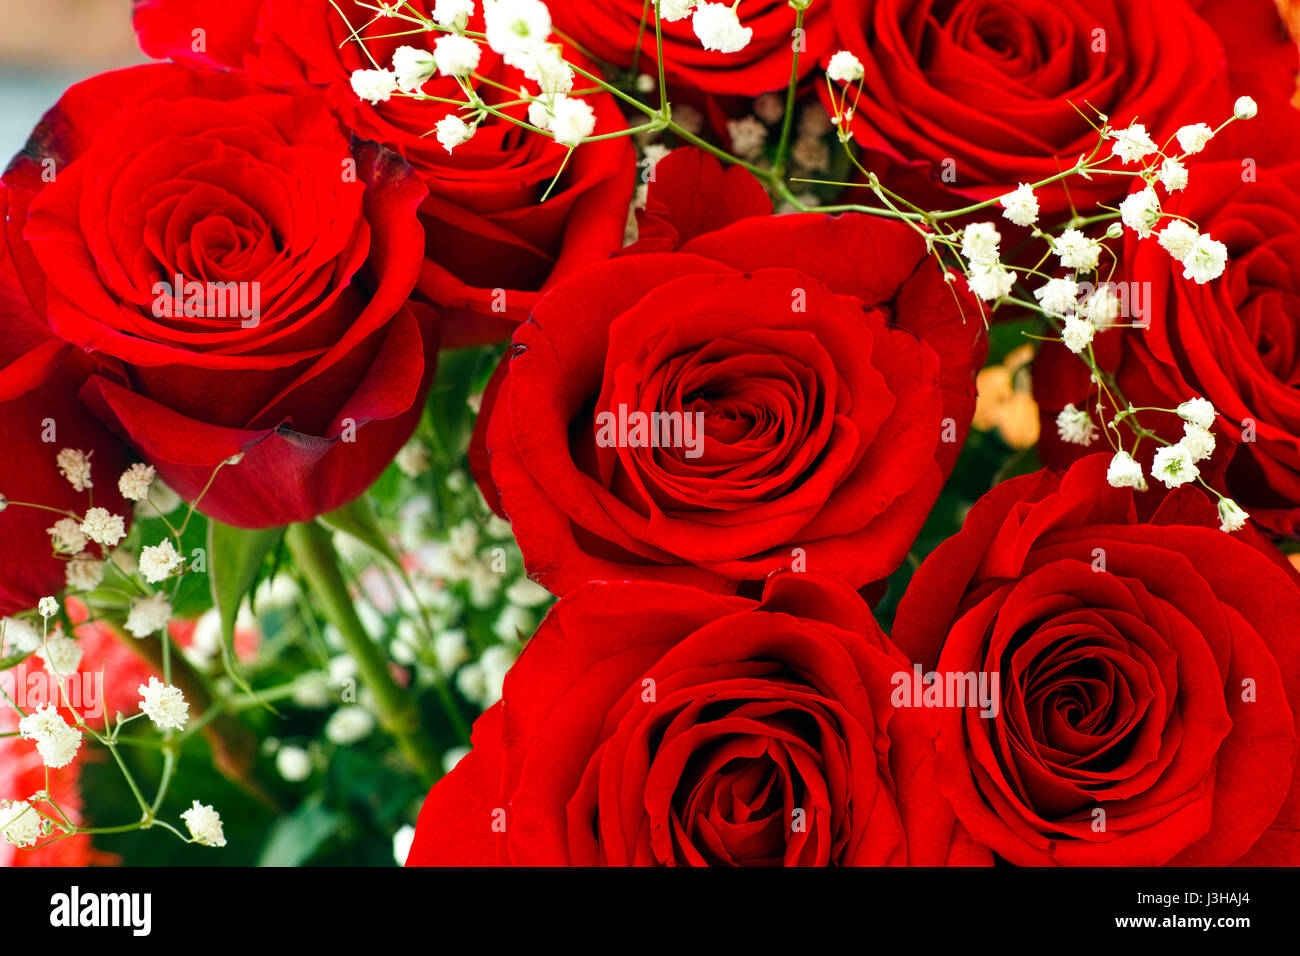 Bouquet Of Red Roses And Small White Flowers Close Up Stock Photo